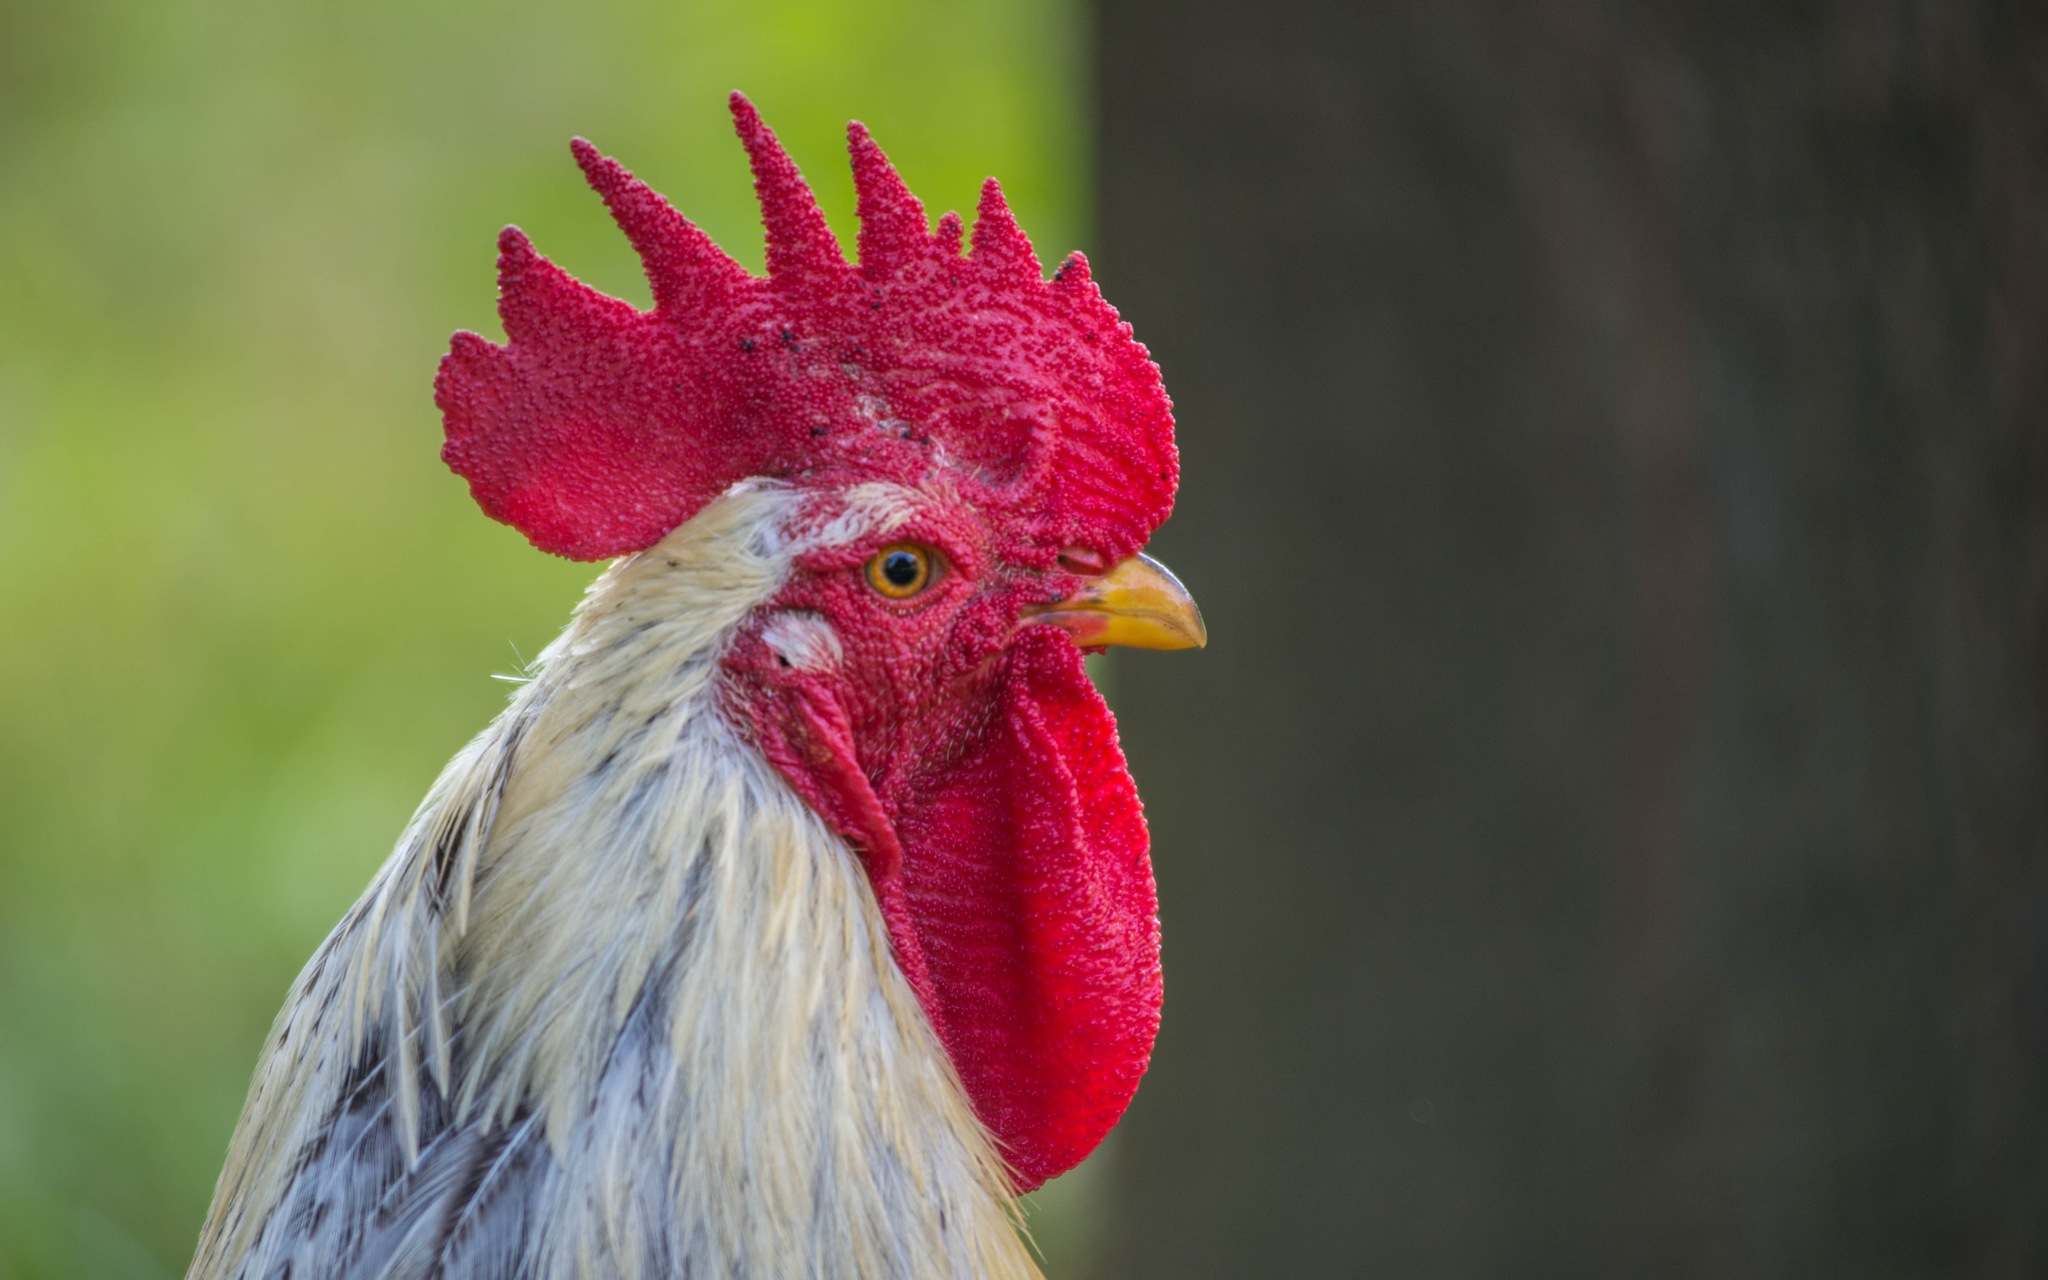 rooster by Vlado Ferencic